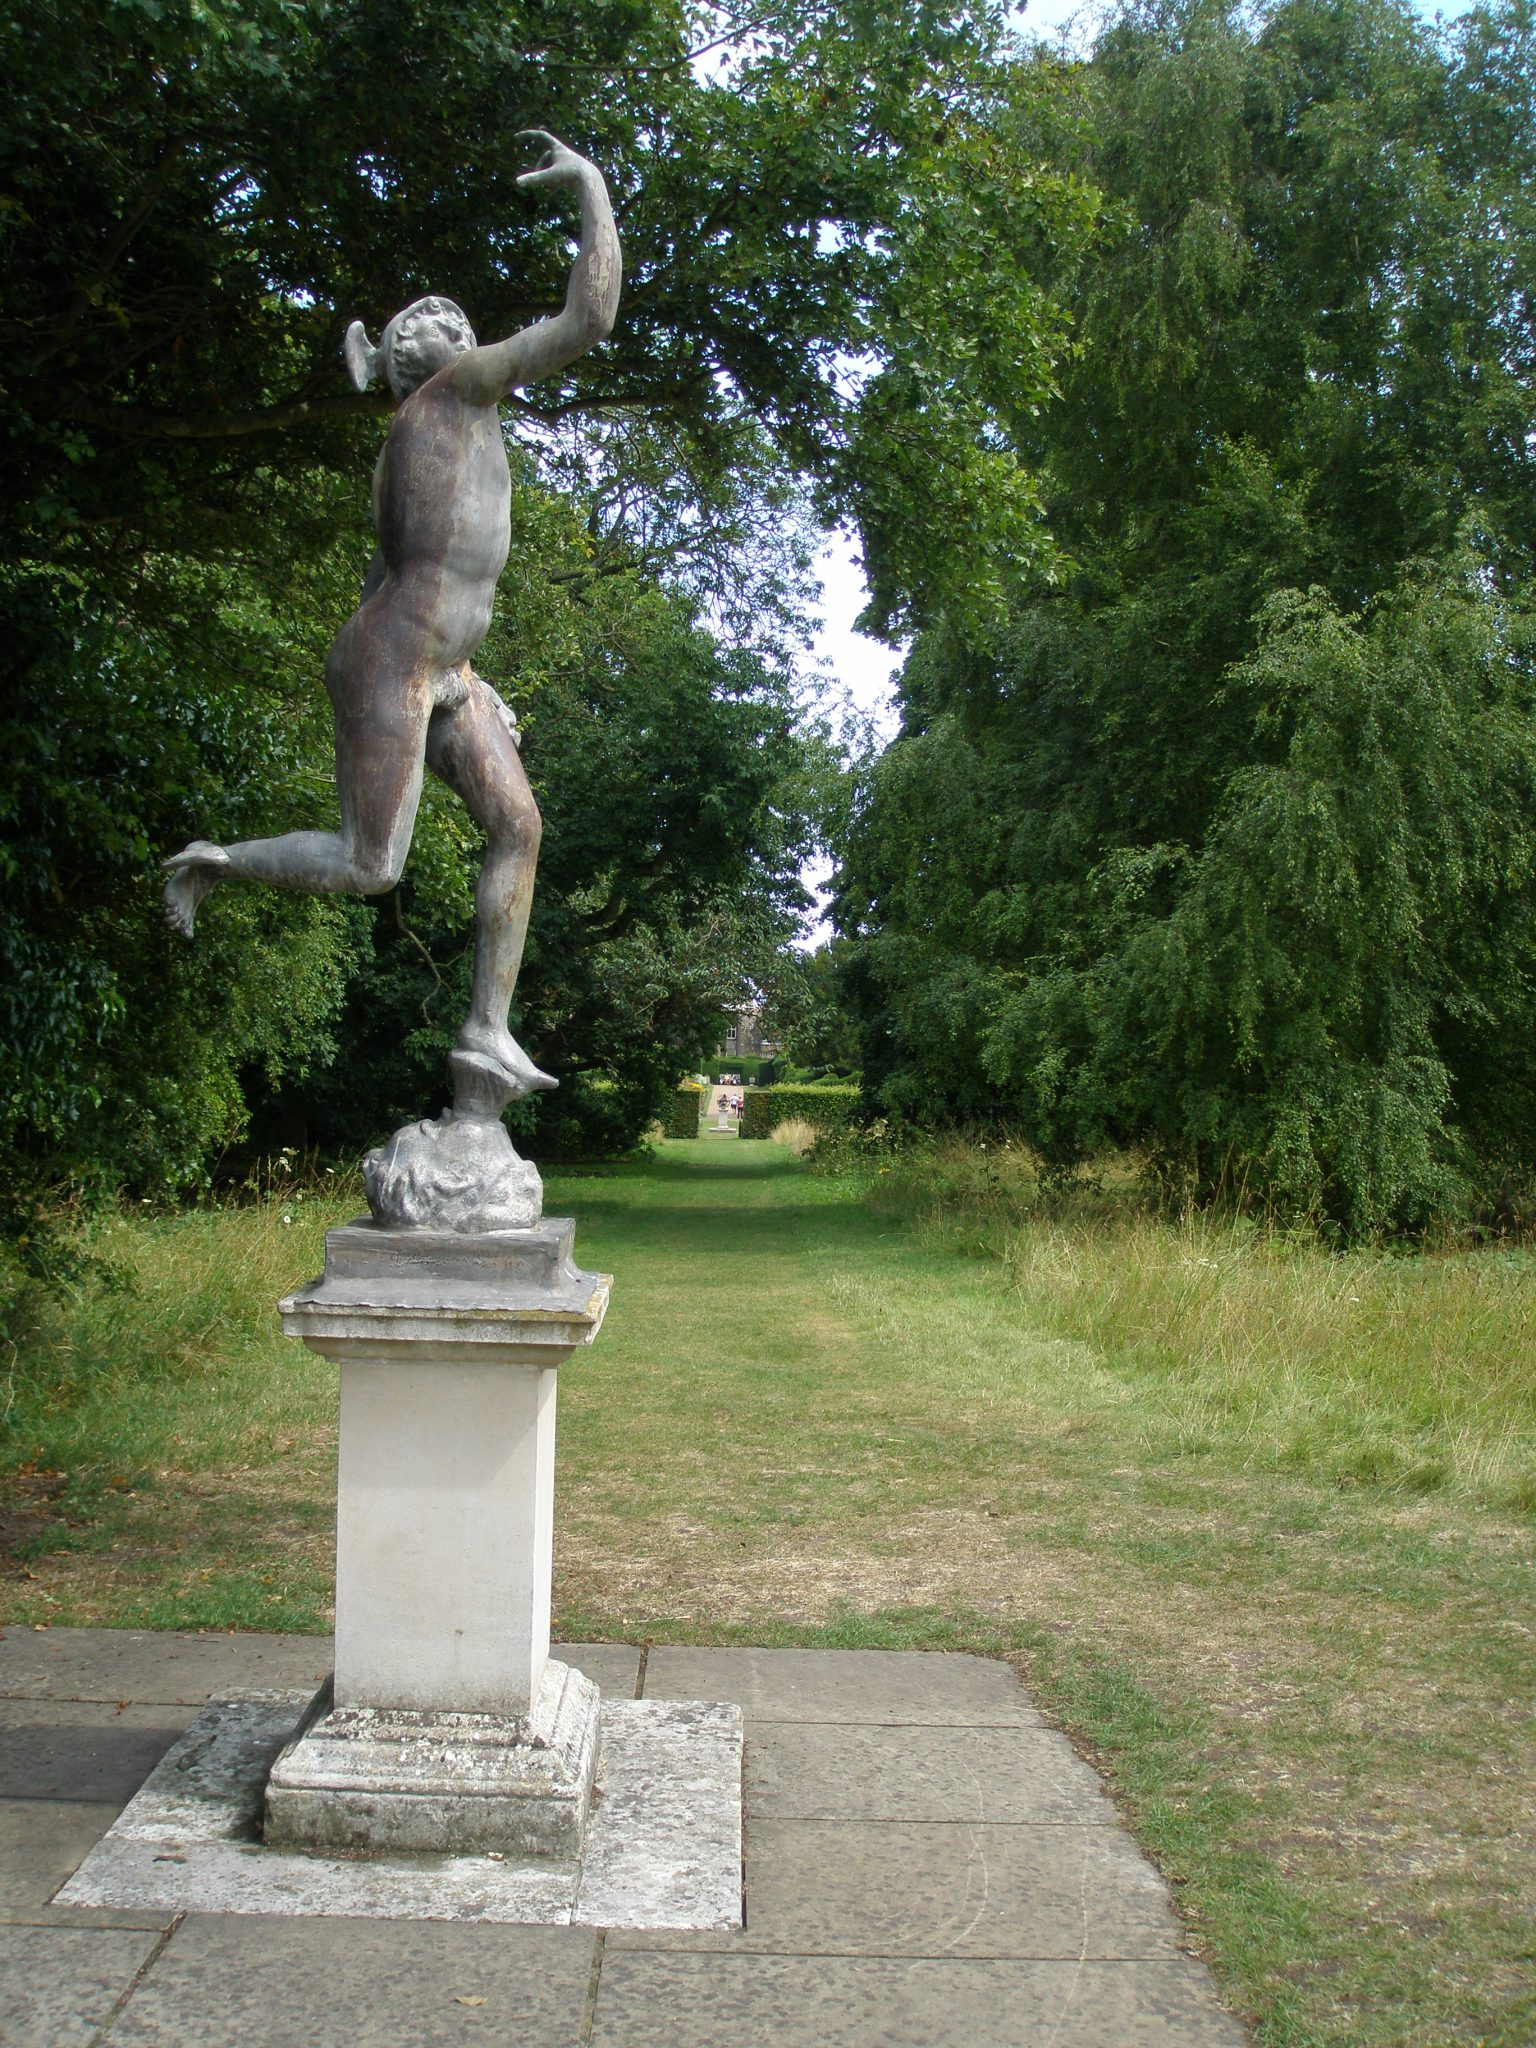 Beyond the Upper Terrace, this statue of Hermes welcomes visitors to the wild ramble of the Garden's Paddock-area.